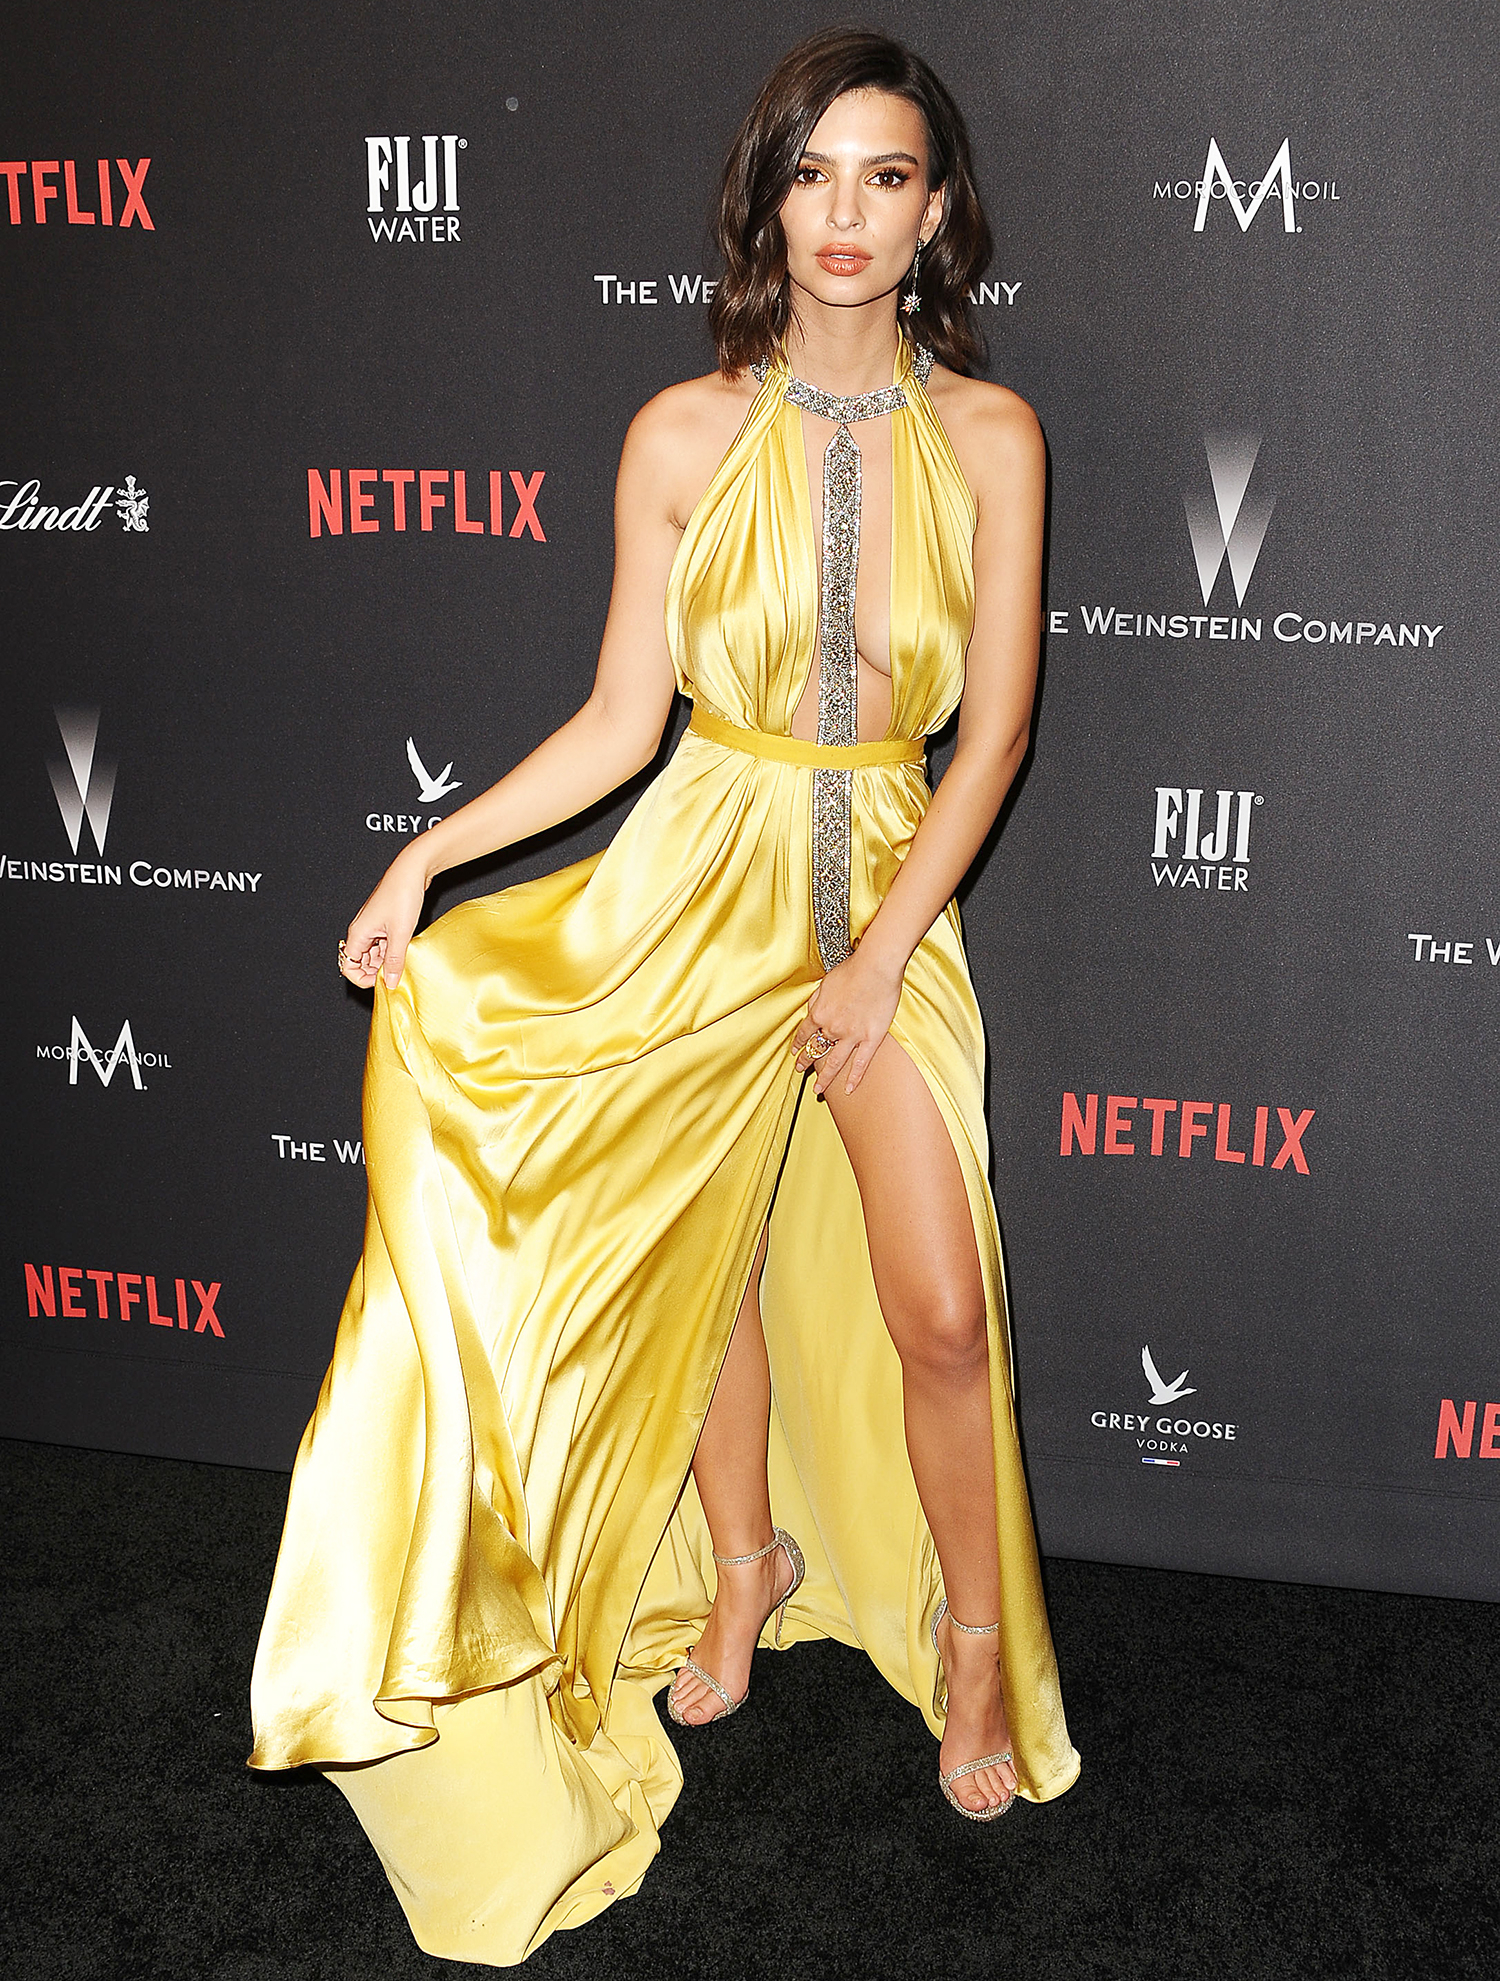 Emily Ratajkowski attends the 2017 Weinstein Company and Netflix Golden Globes after party on January 8, 2017 in Los Angeles, California.